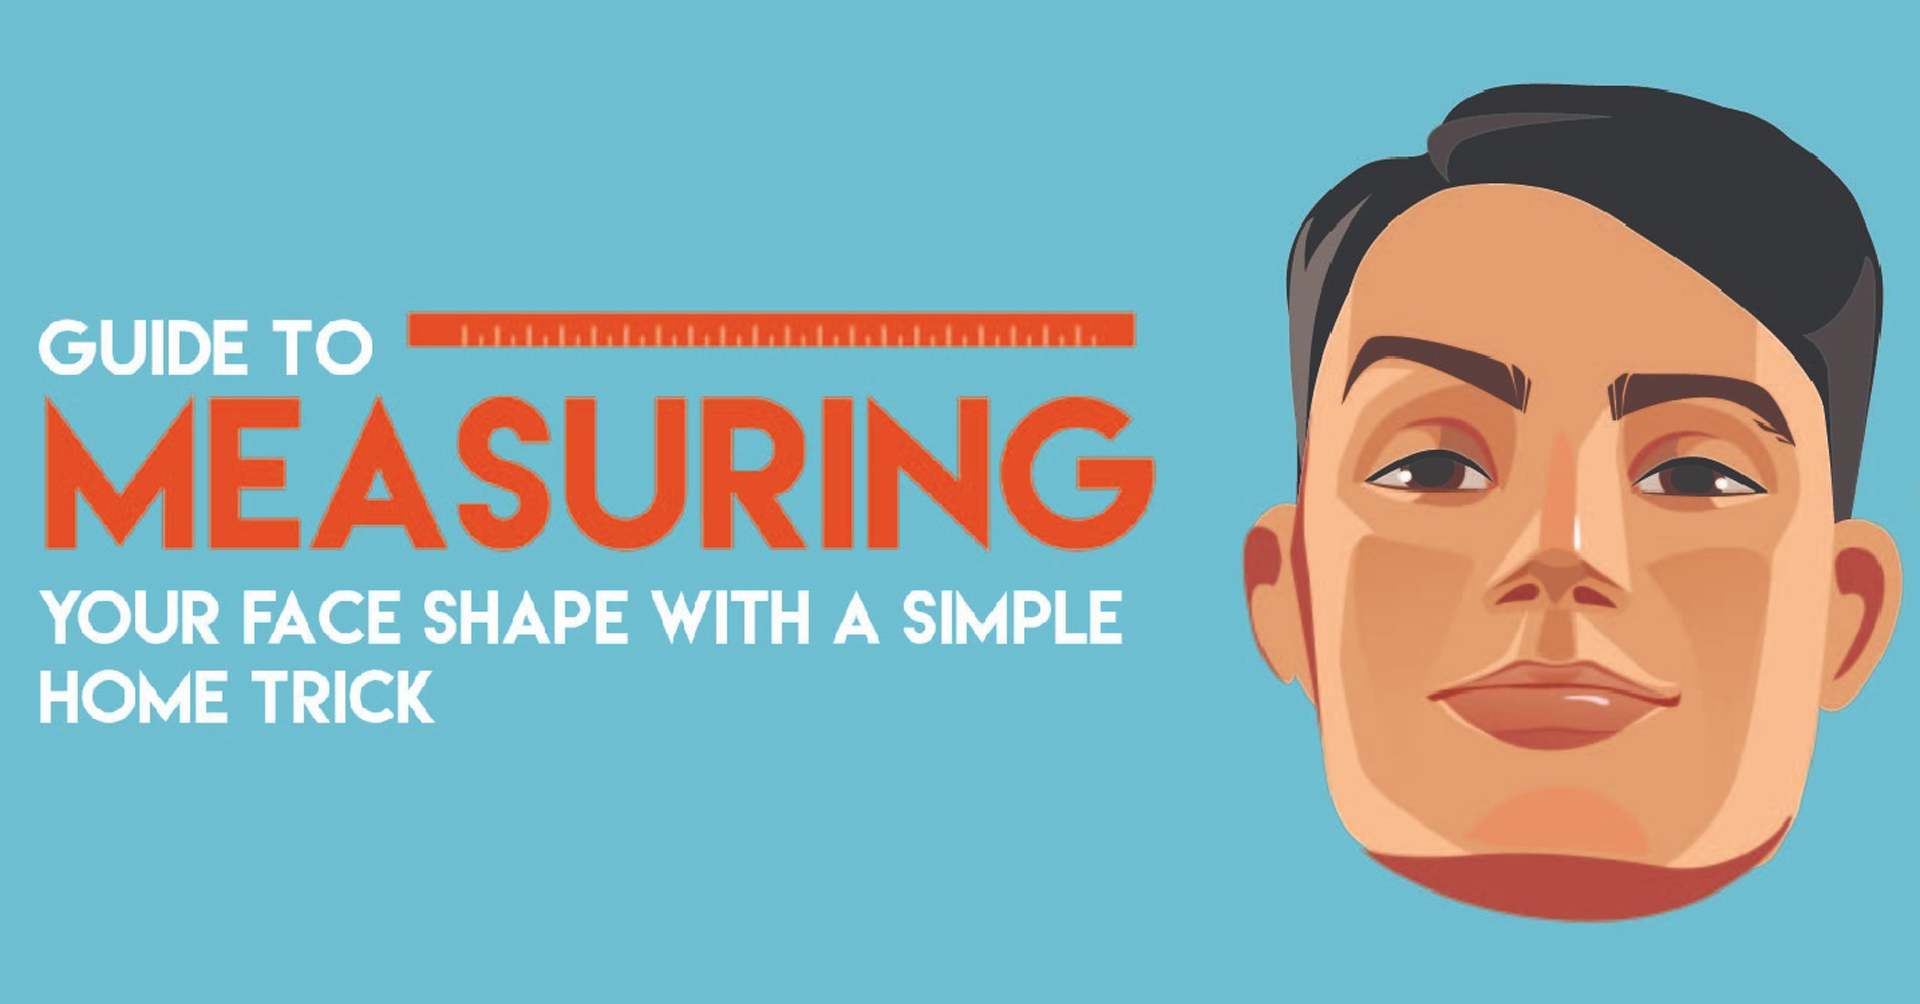 3)Guide To Measuring Your Face Shape With A Simple Home Trick